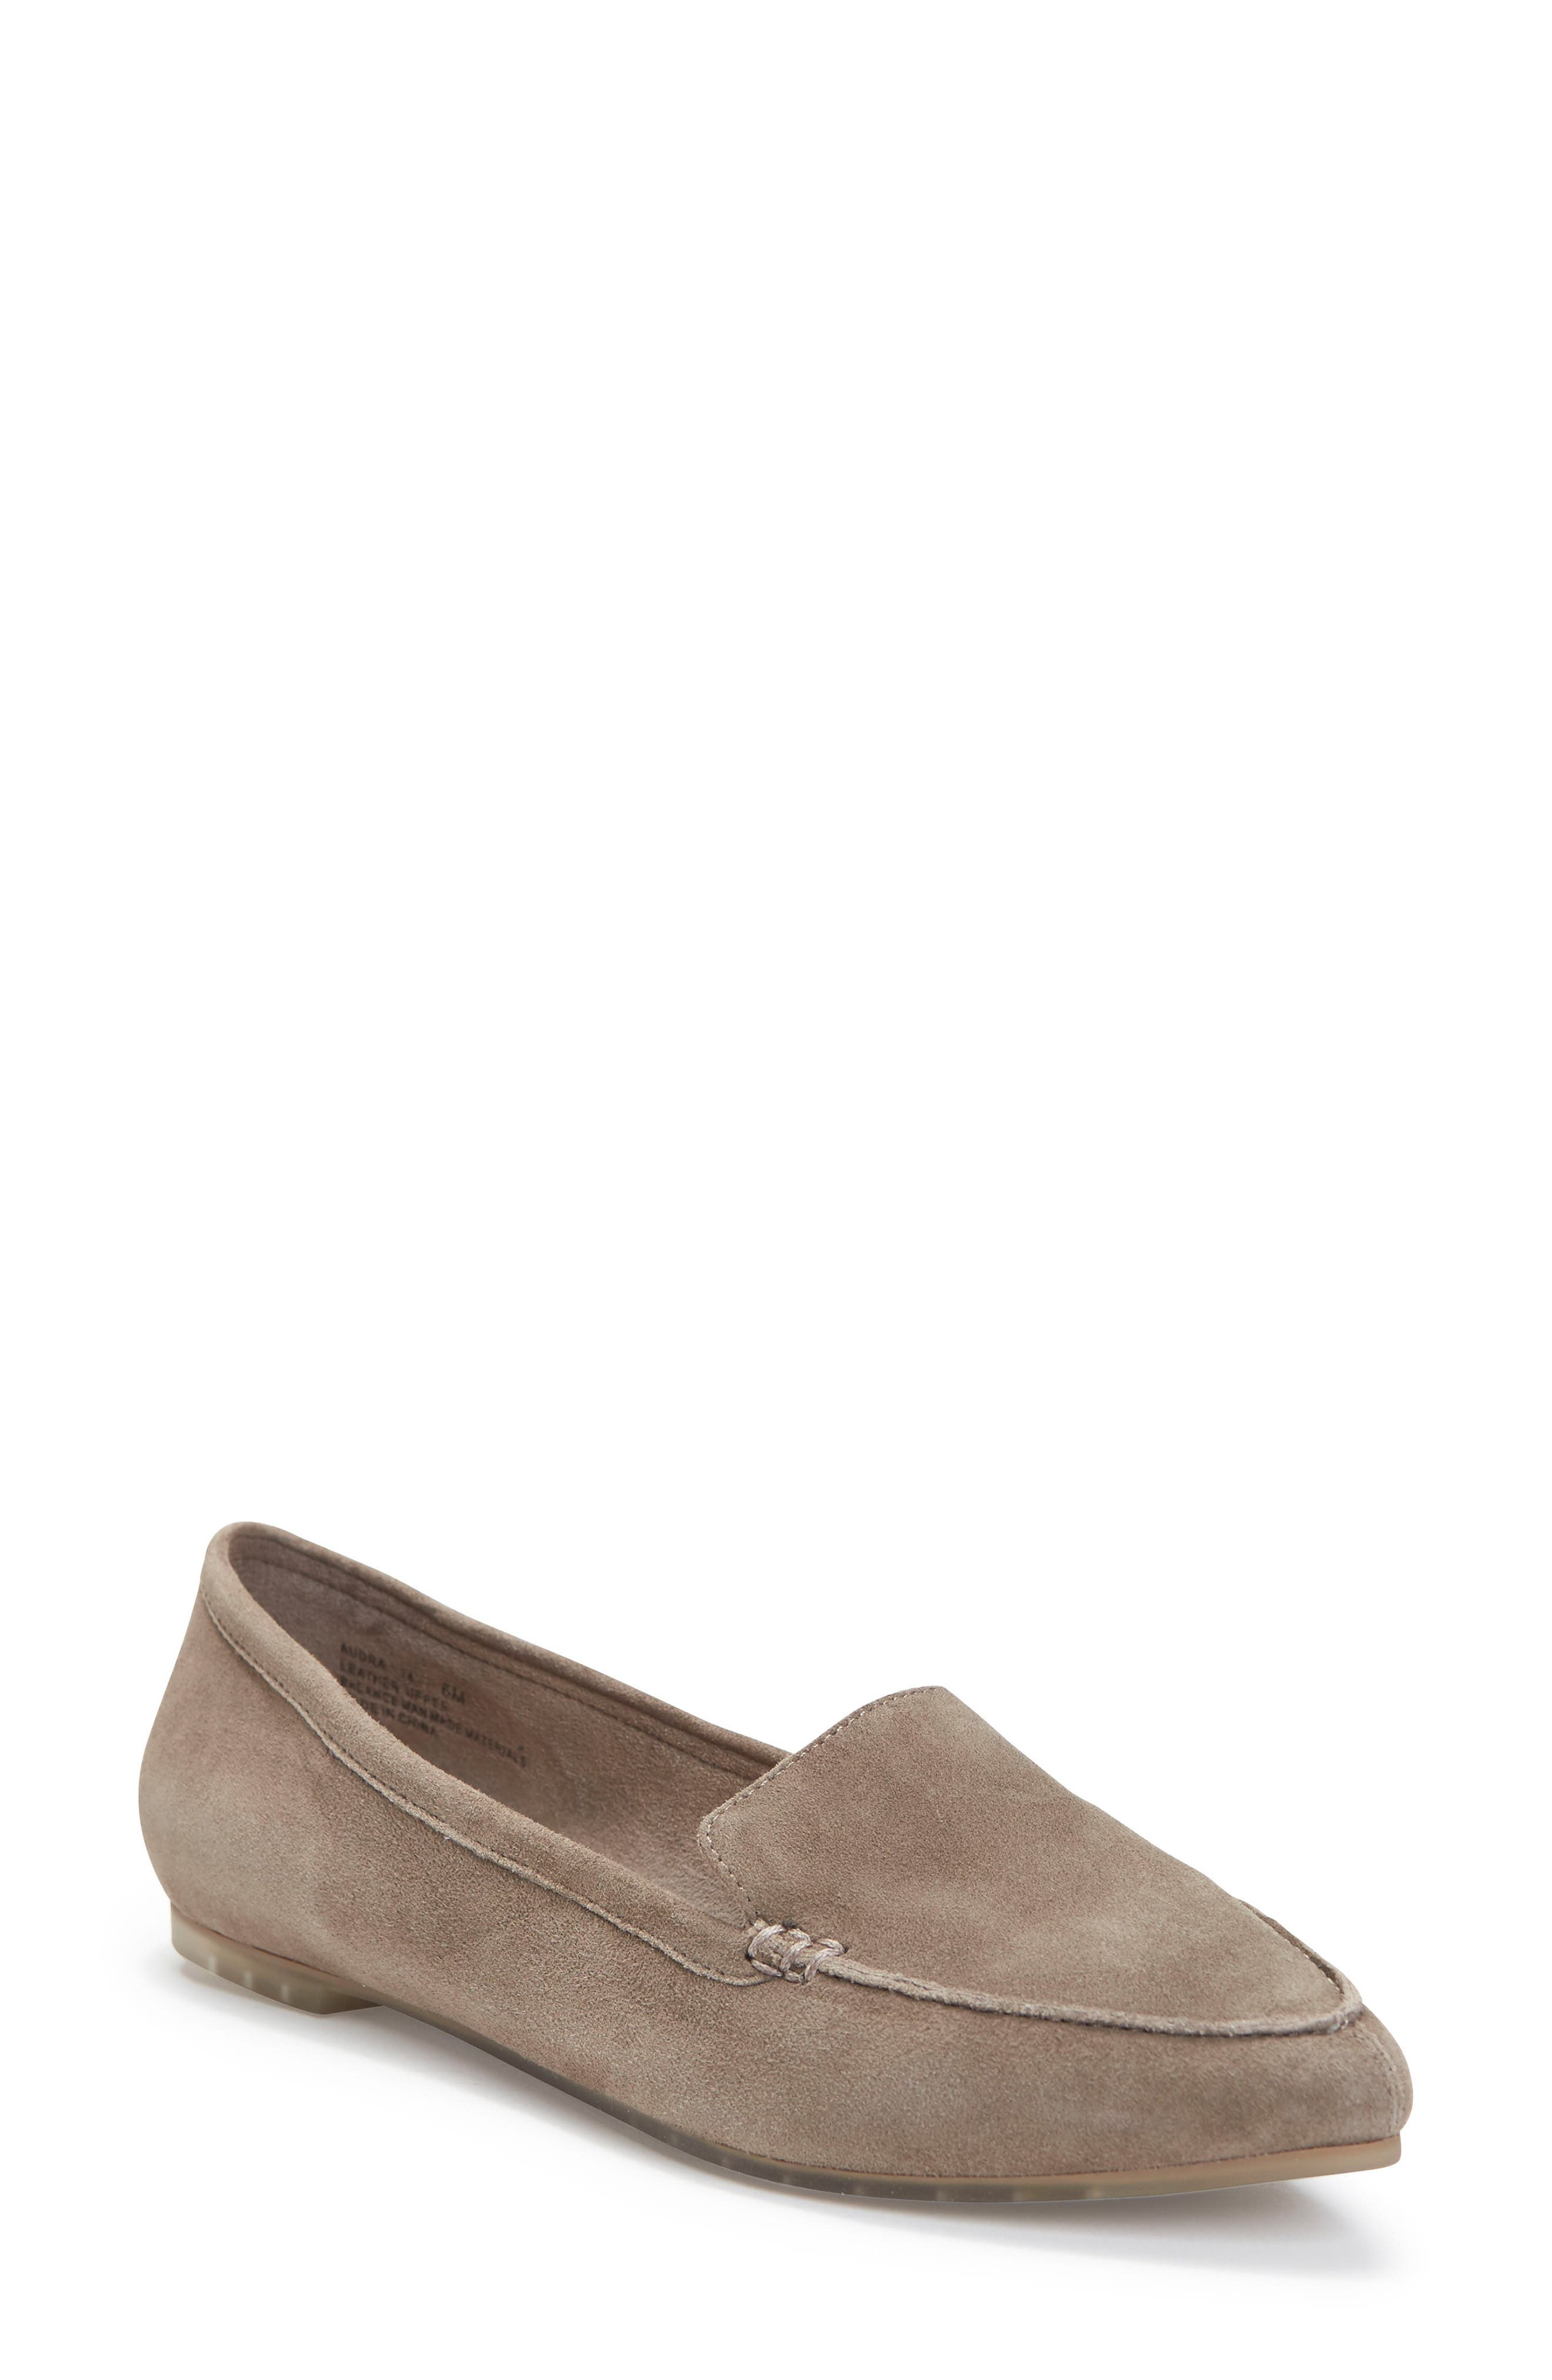 Me Too Audra Loafer Flat- Grey